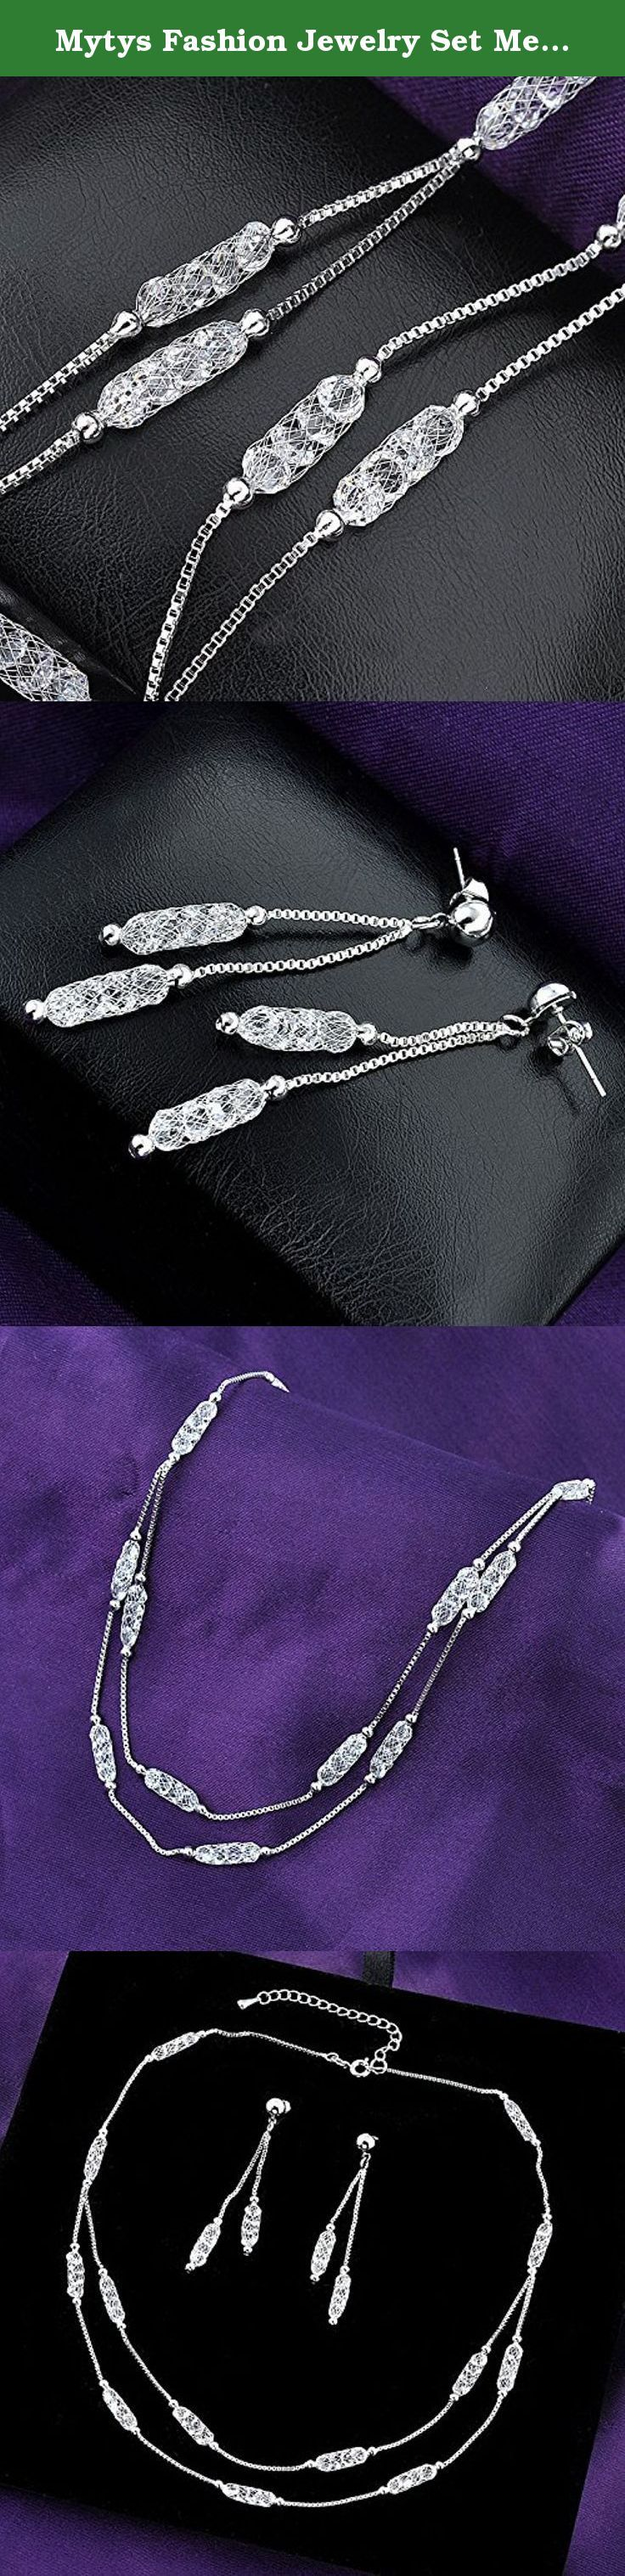 Mytys Fashion Jewelry Set Mesh Crystal Necklace and Tassel Drop Earring Silver Jewelry Set. Condition: 100% Brand New and High Quality Metal: alloy Why choose us? Well-established Fashion Jewelry Maker, Shenzhen Sunrising Trade Co., Ltd. is located in Luohu district of Shenzhen city, is a professional and experienced wholesaler engaged in design and production fashion jewellery, such as rings, earrings, necklaces, bracelets, brooches, jewelry sets, etc. The company's well-equipped…